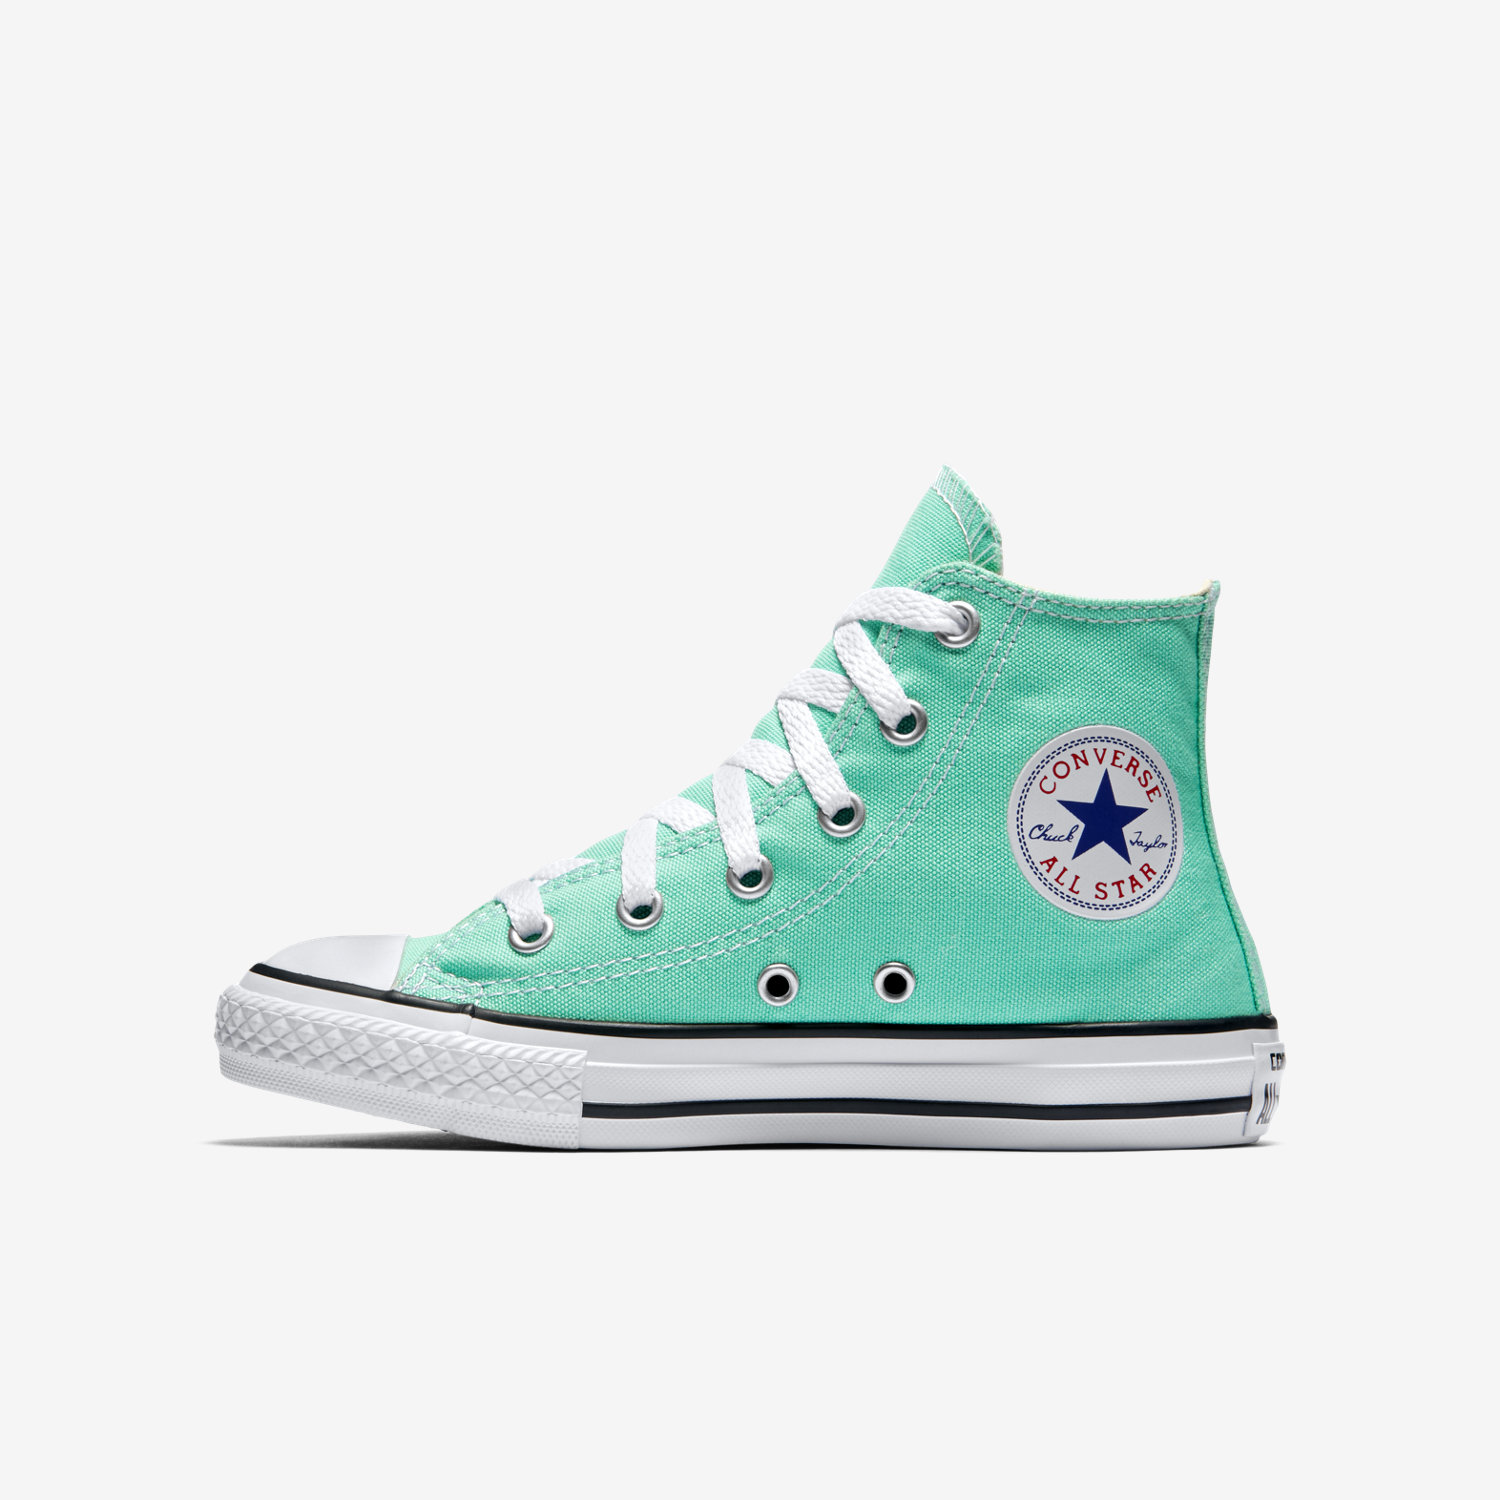 shoes for girls high tops converse. shoes for girls high tops converse